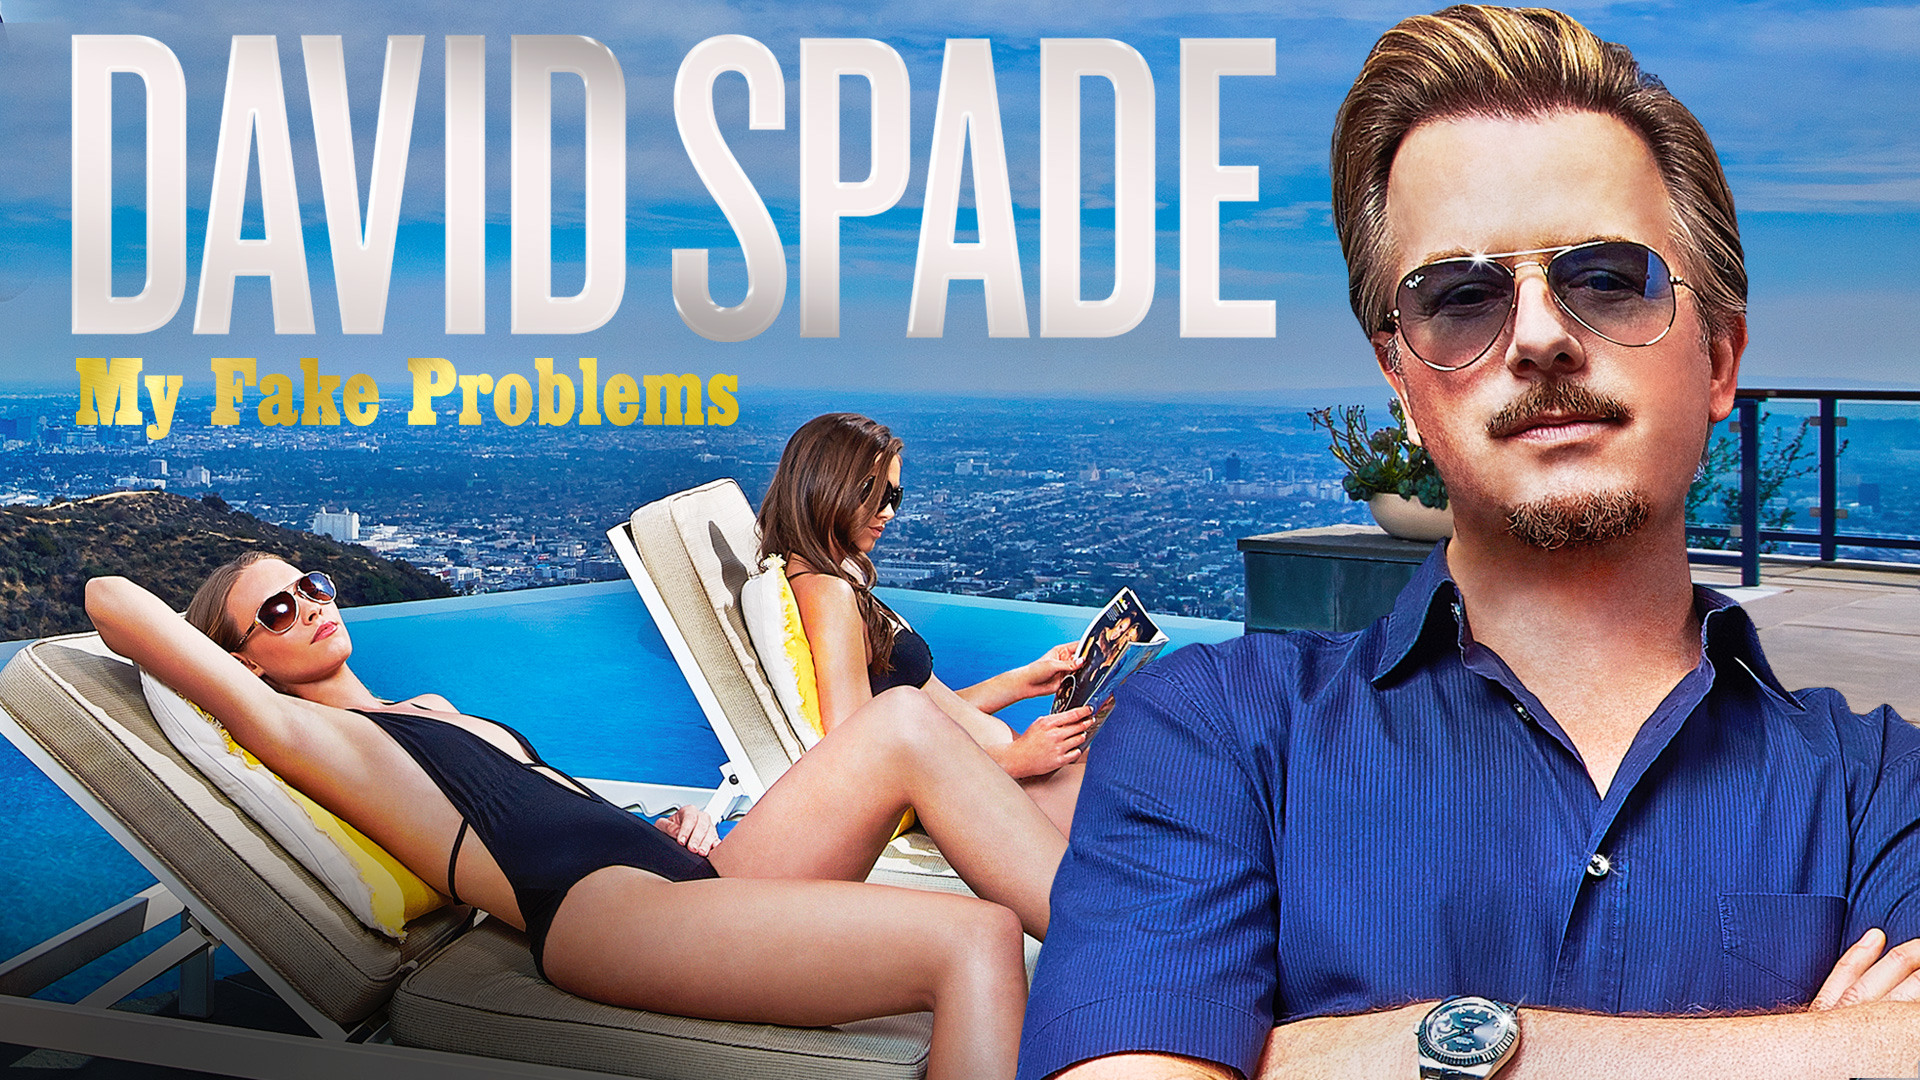 DAVID SPADE - MY FAKE PROBLEMS